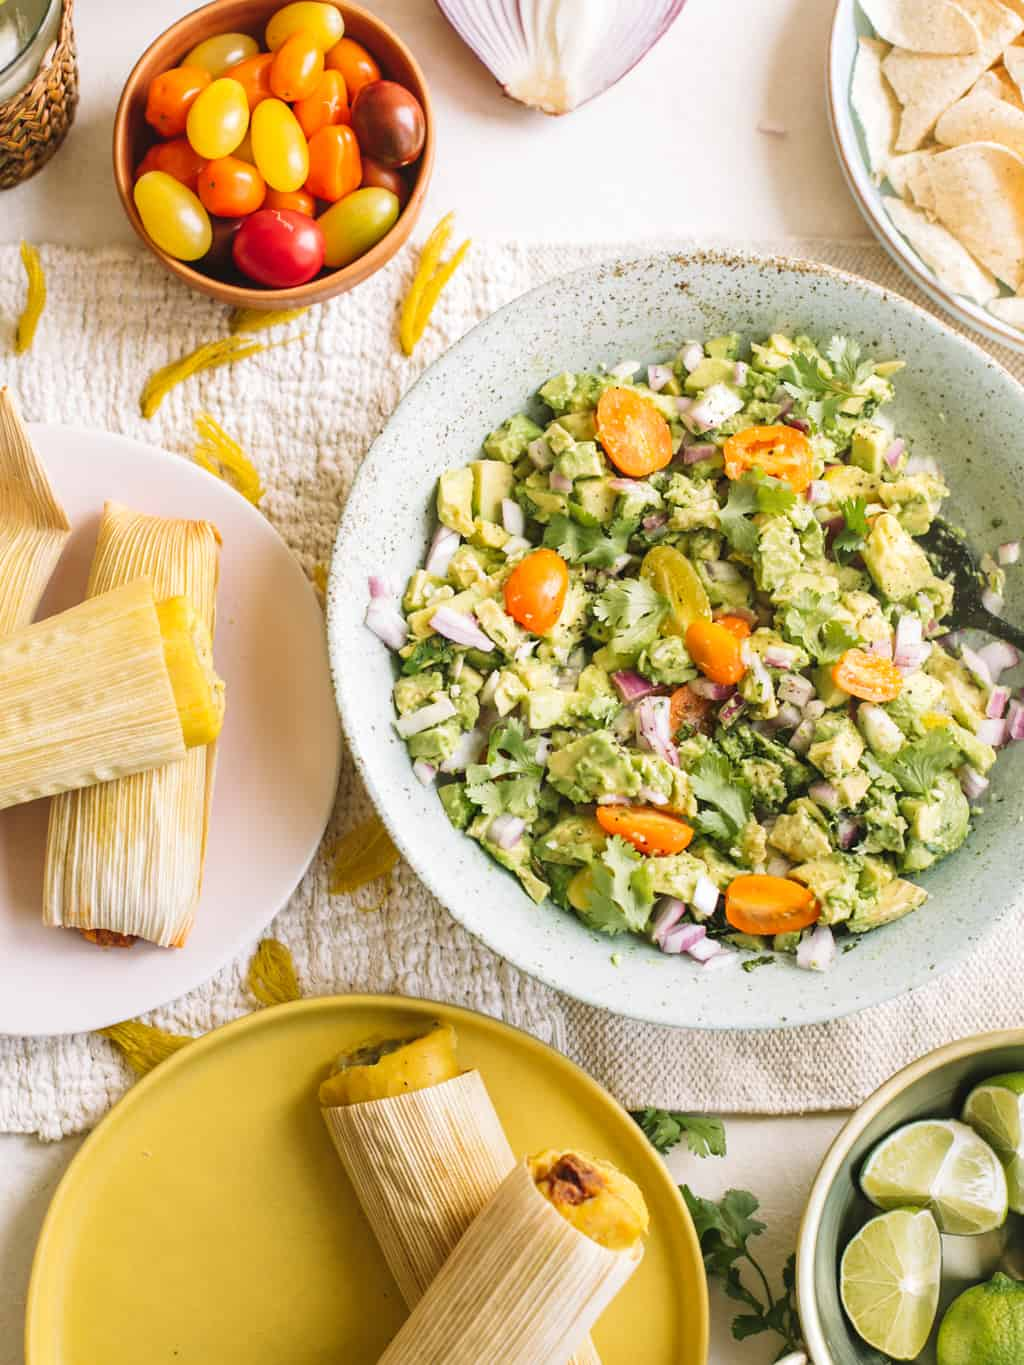 Blue bowl filled with deconstructed avocado salad and a side pink plate of tamales.